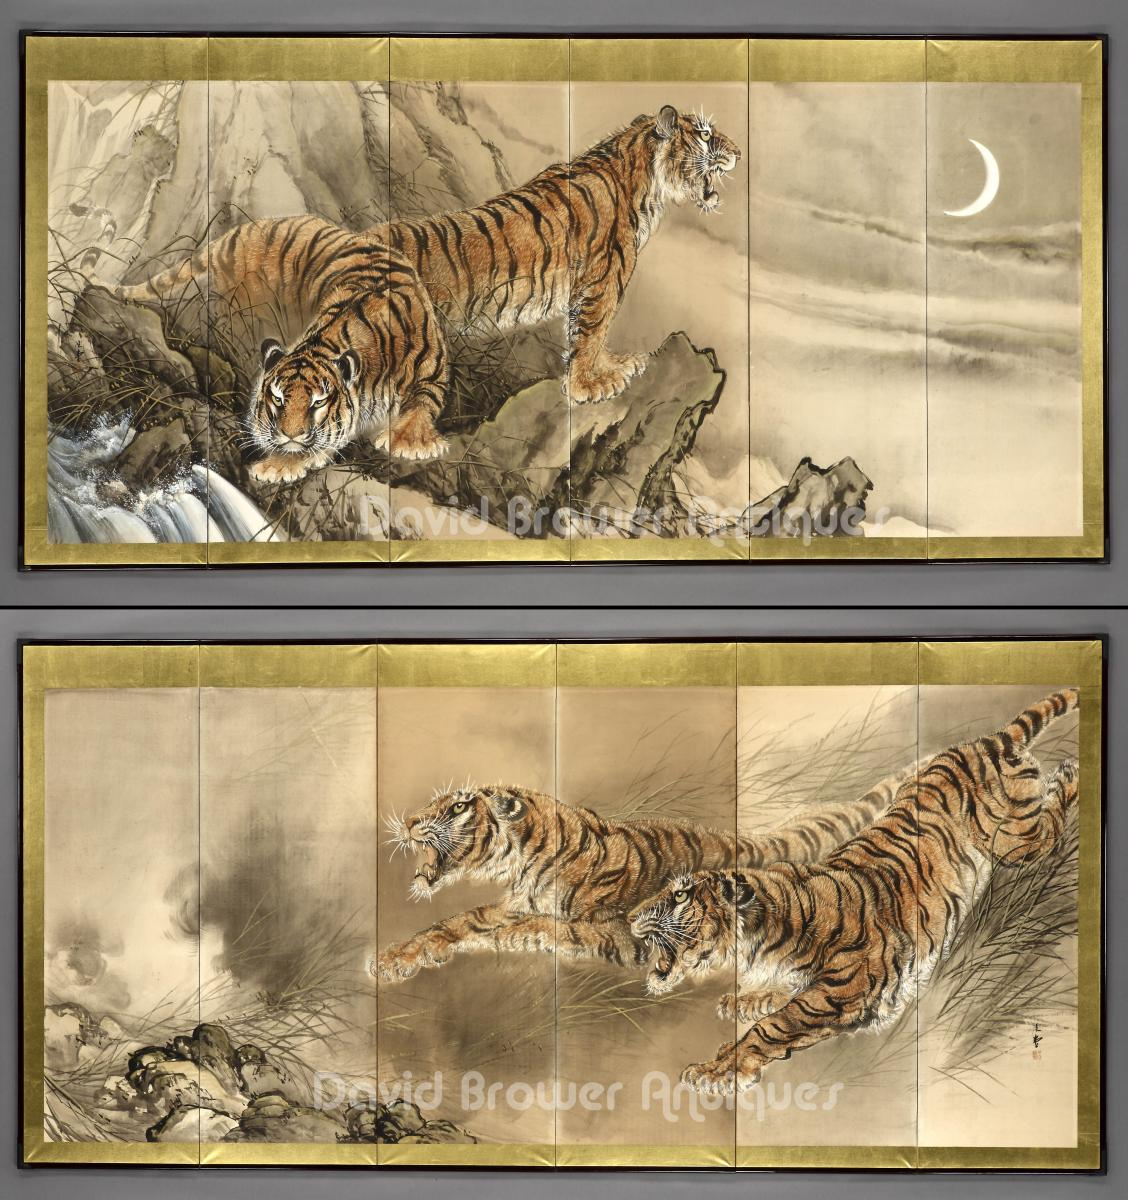 6 fold Japanese paper screens depicting 2 tigers